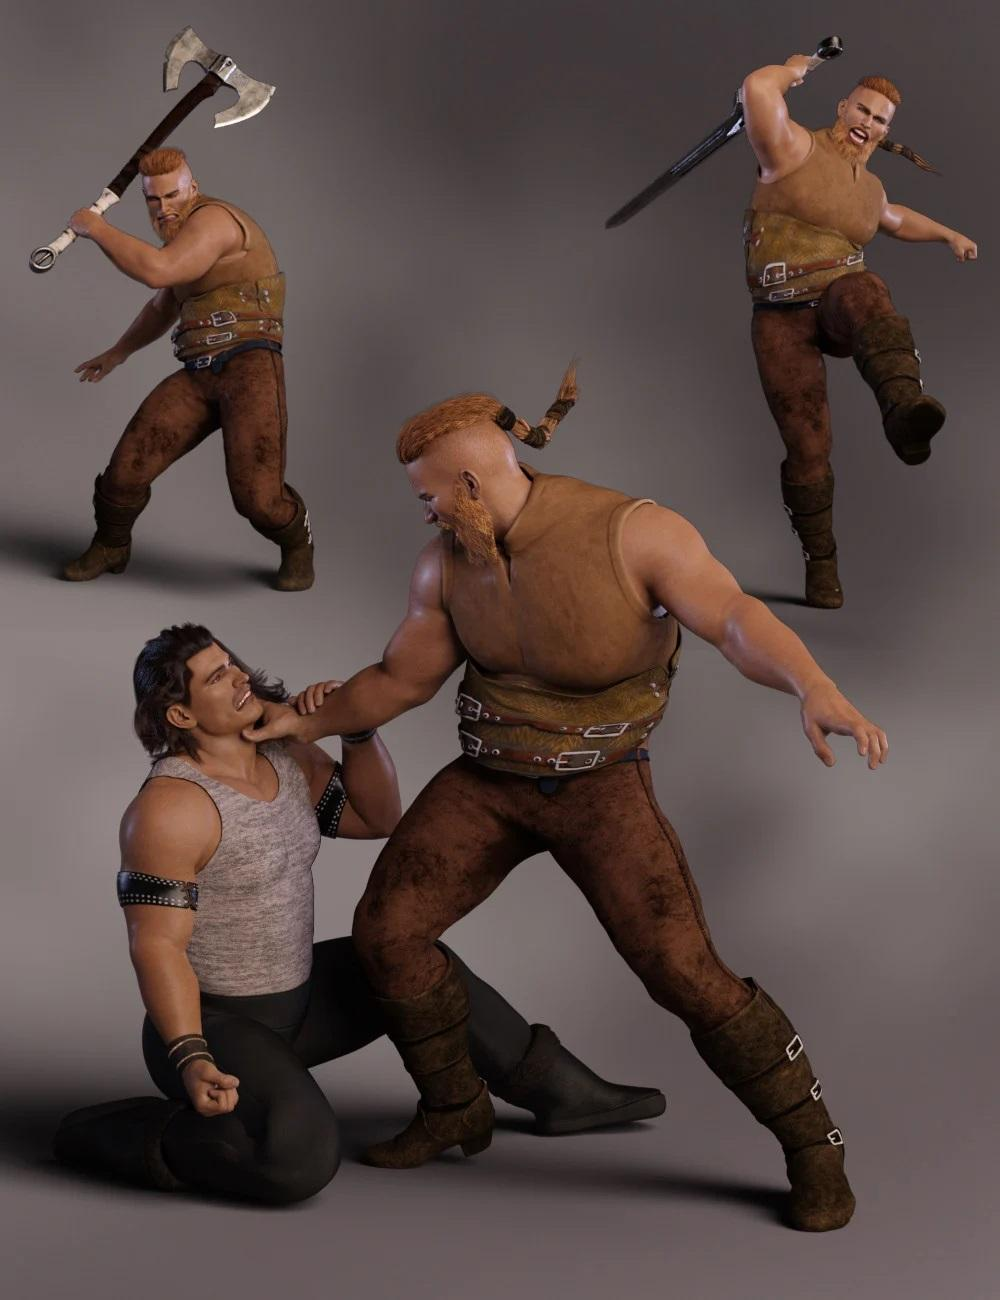 Pillage for Kjaer 8 and Genesis 8 Male